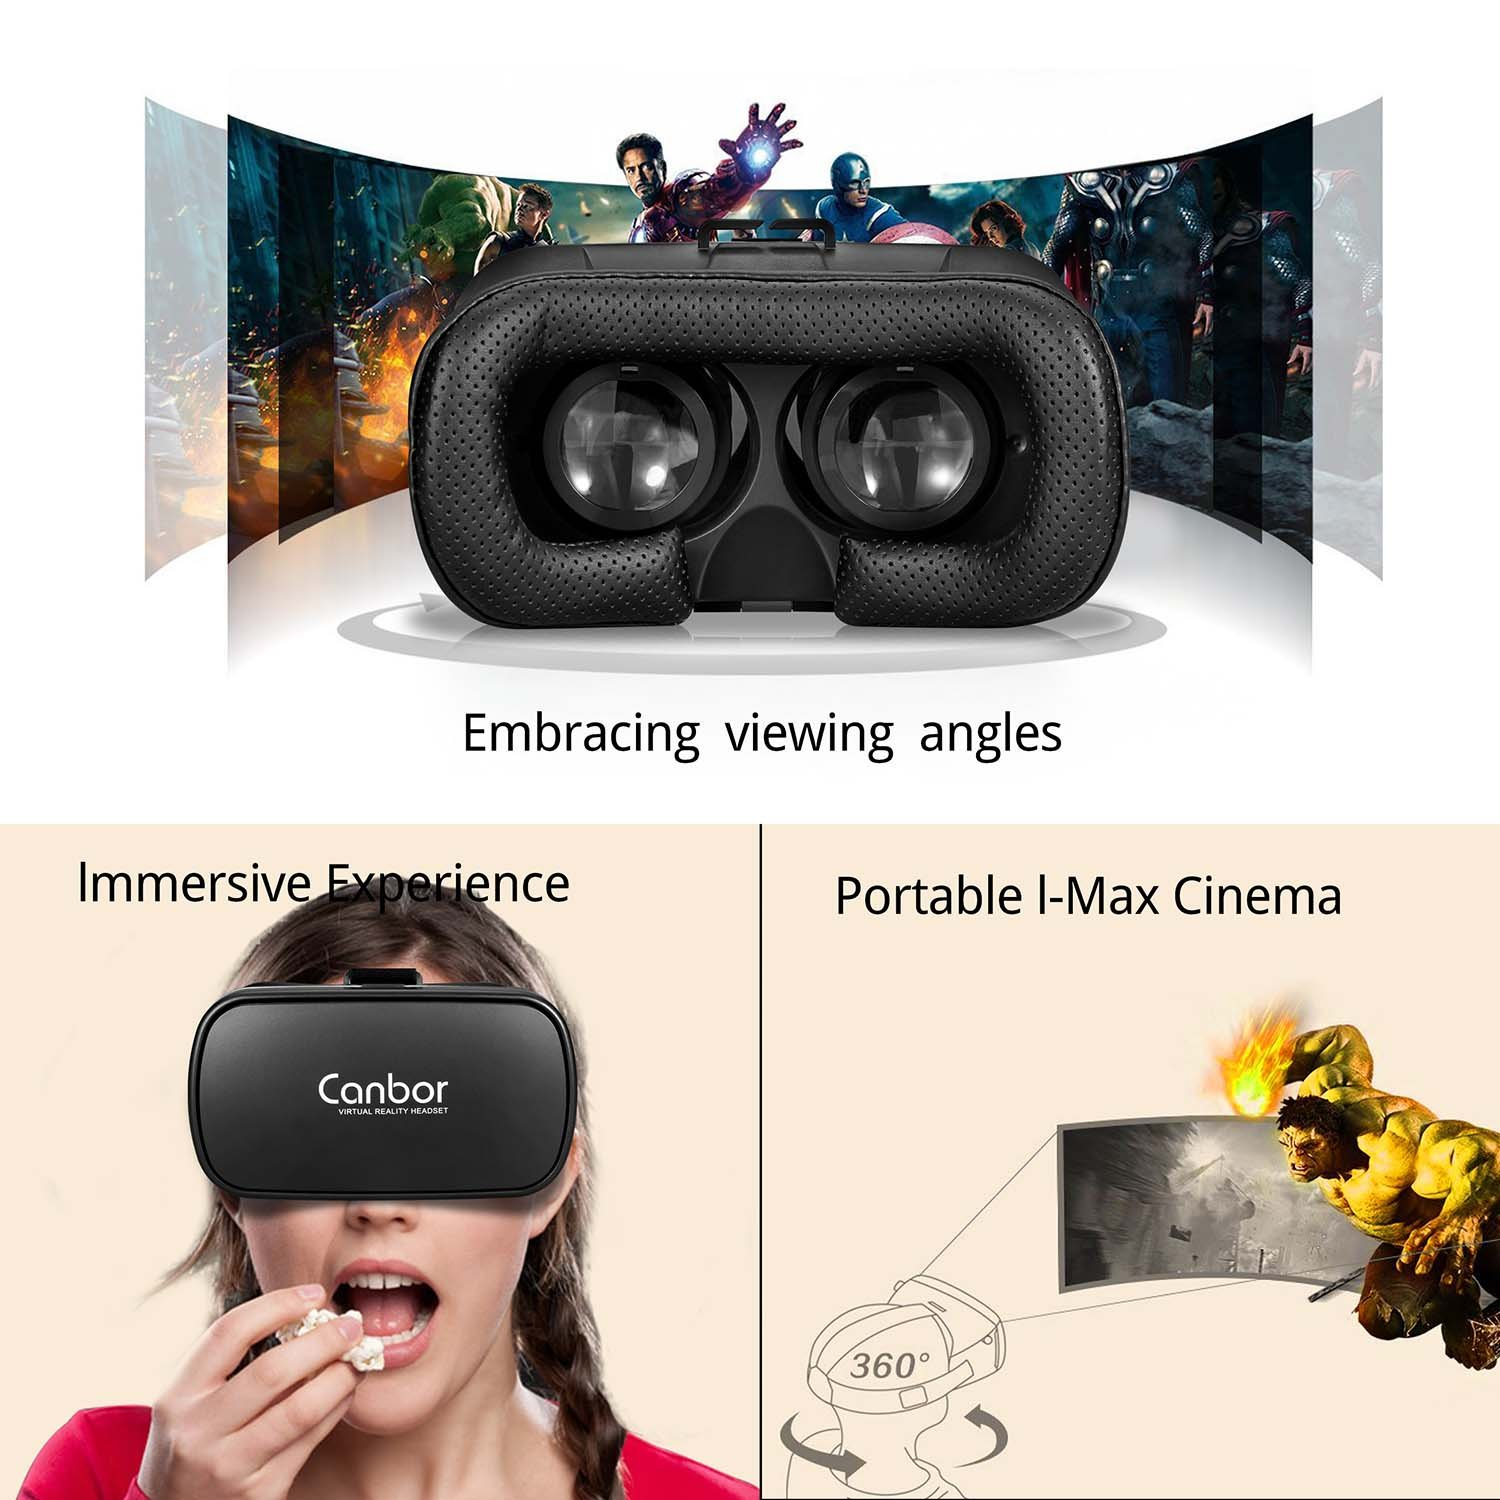 878bf31ffd3 Canbor VR Headset